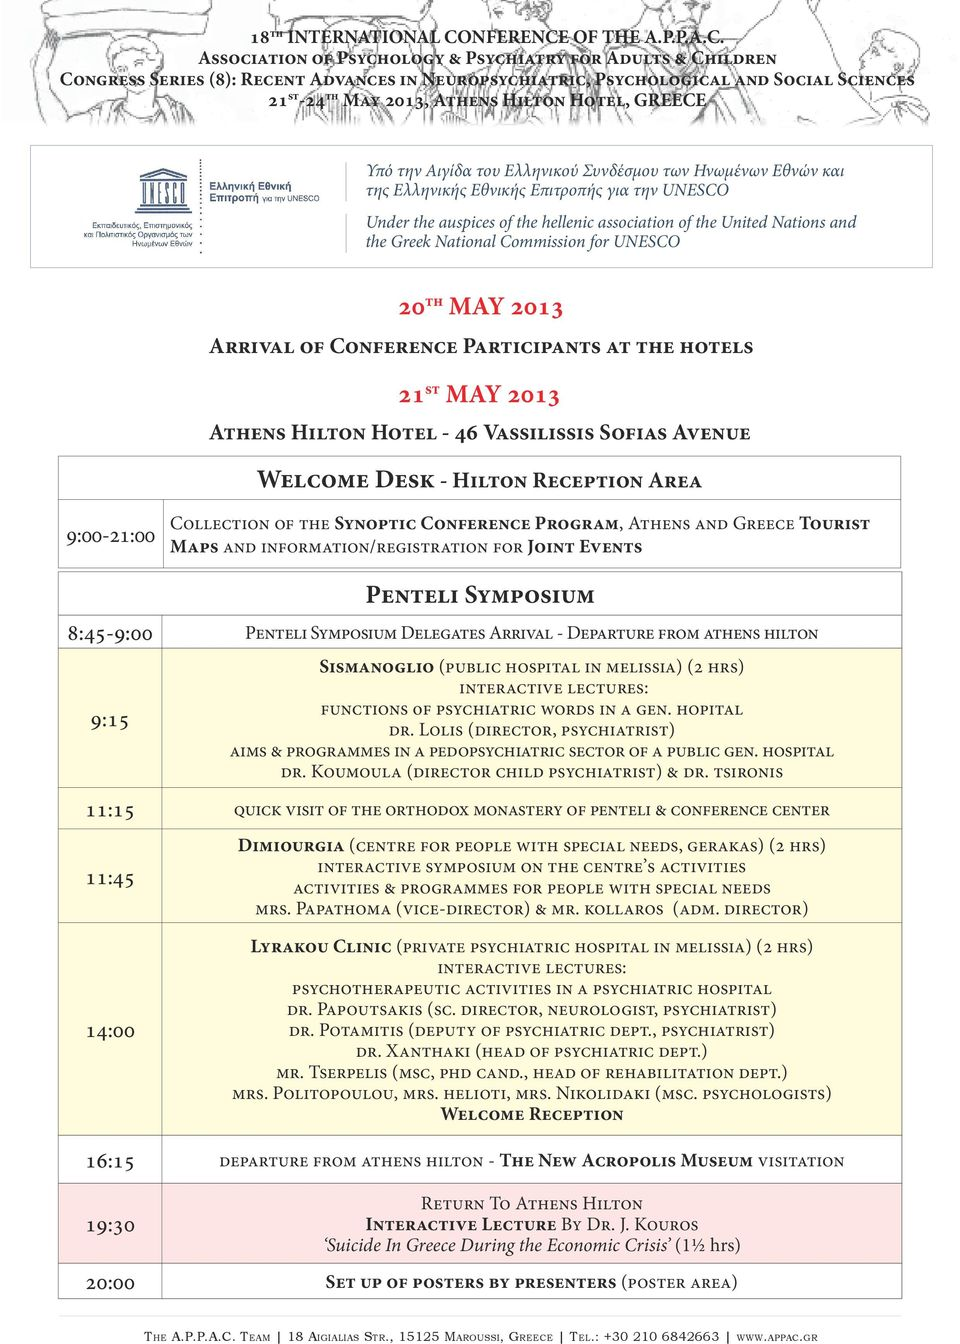 9:00-2:00 Collection of the Synoptic Conference Program, Athens and Greece Tourist Maps and information/registration for Joint Events Penteli Symposium 8:45-9:00 Penteli Symposium Delegates Arrival -